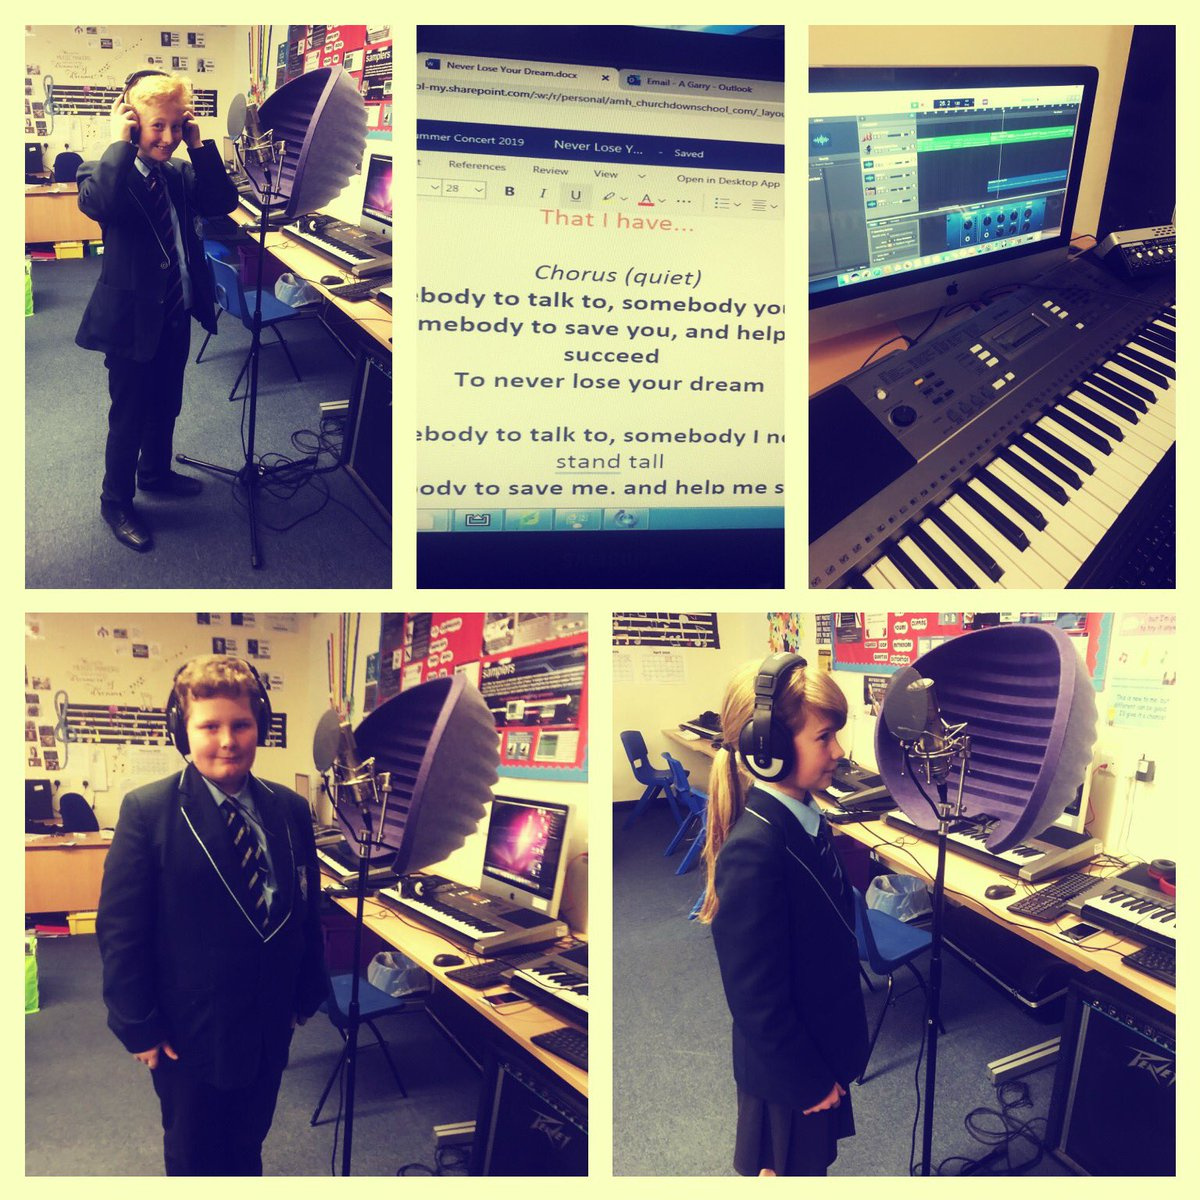 Music activity afternoon! Recording a new chorus for the school anthem. #socialdistancing #musicmatters #getcreative #liverecording #LogicProX pic.twitter.com/M57yebBZNI